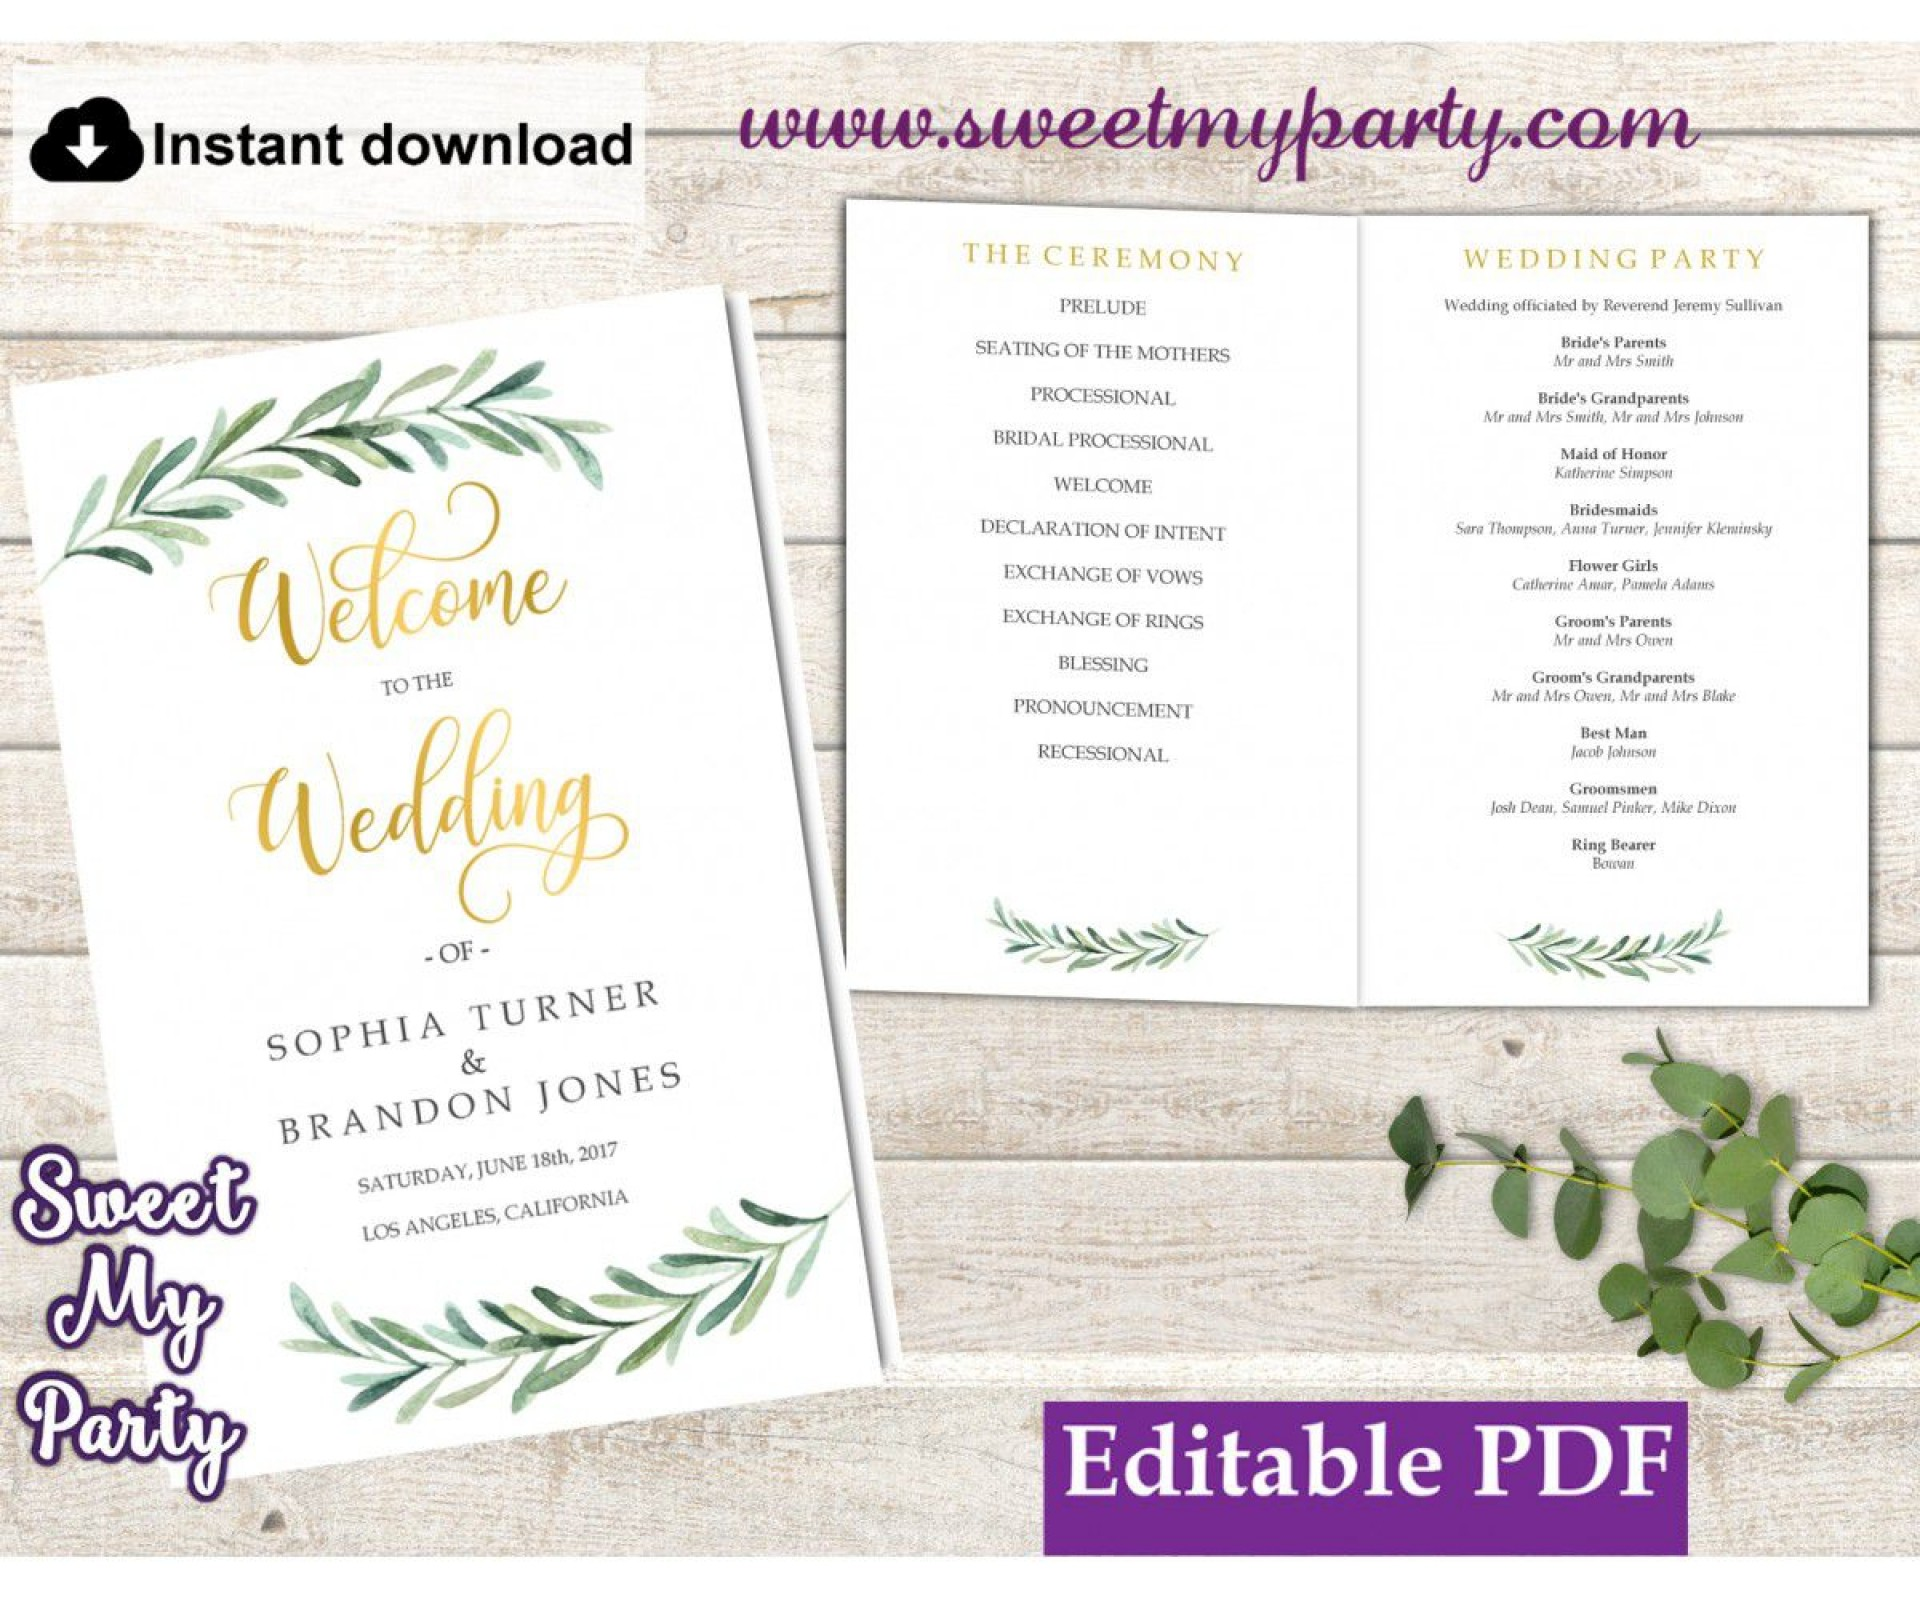 003 Remarkable Wedding Order Of Service Template Inspiration  Church Free Microsoft Word Download1920